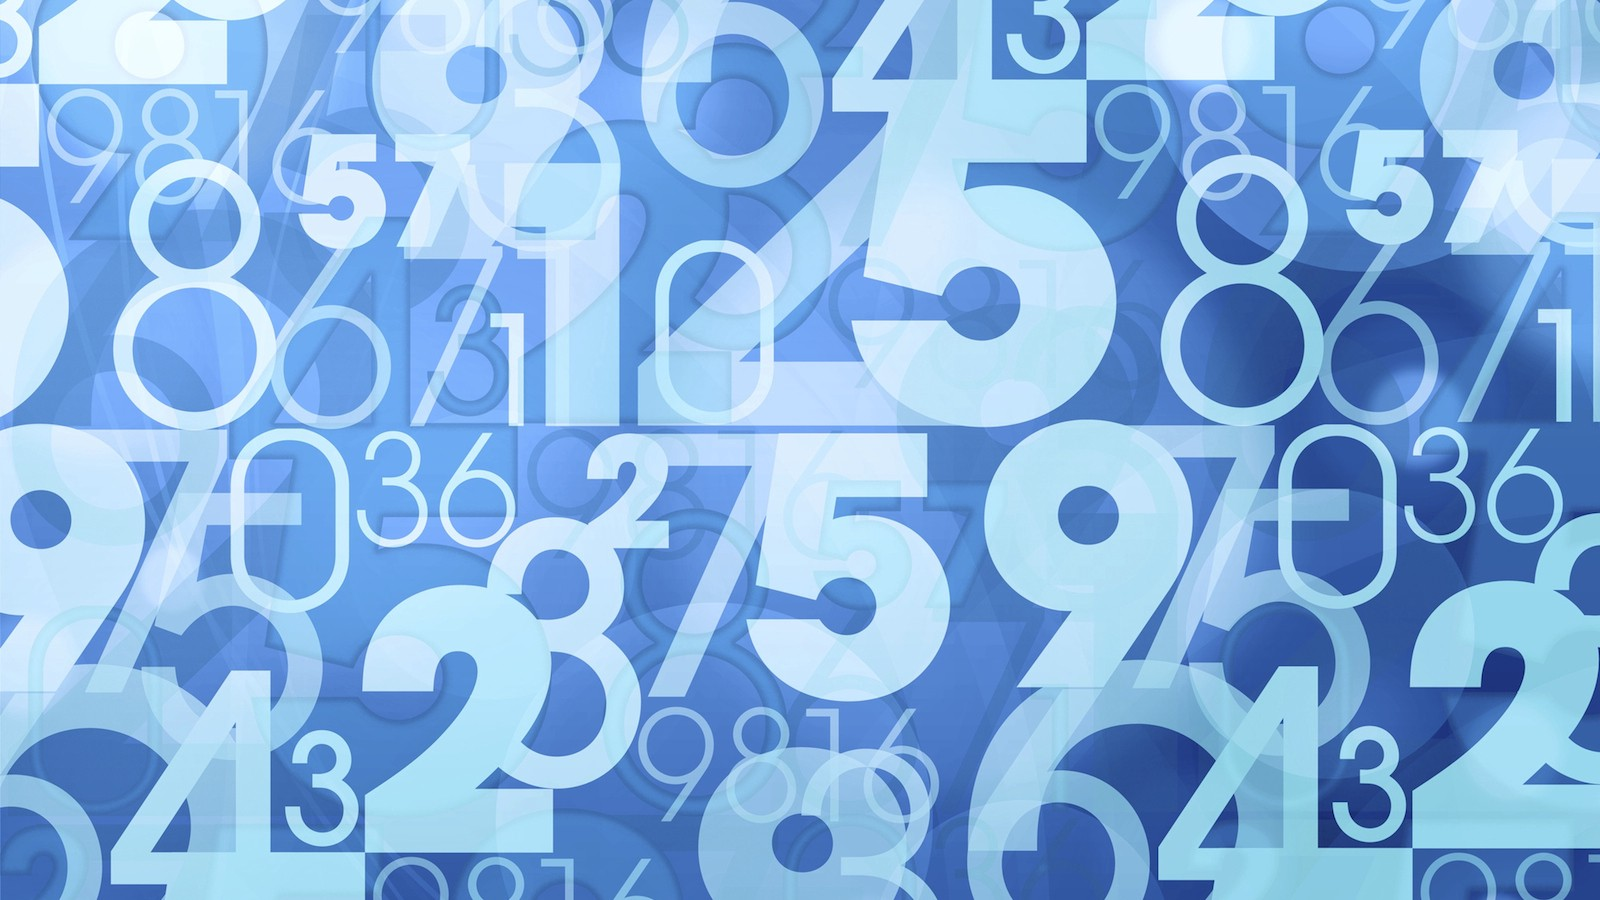 The Fibonacci Sequence to the nᵗʰ number (Python & JavaScript) - By